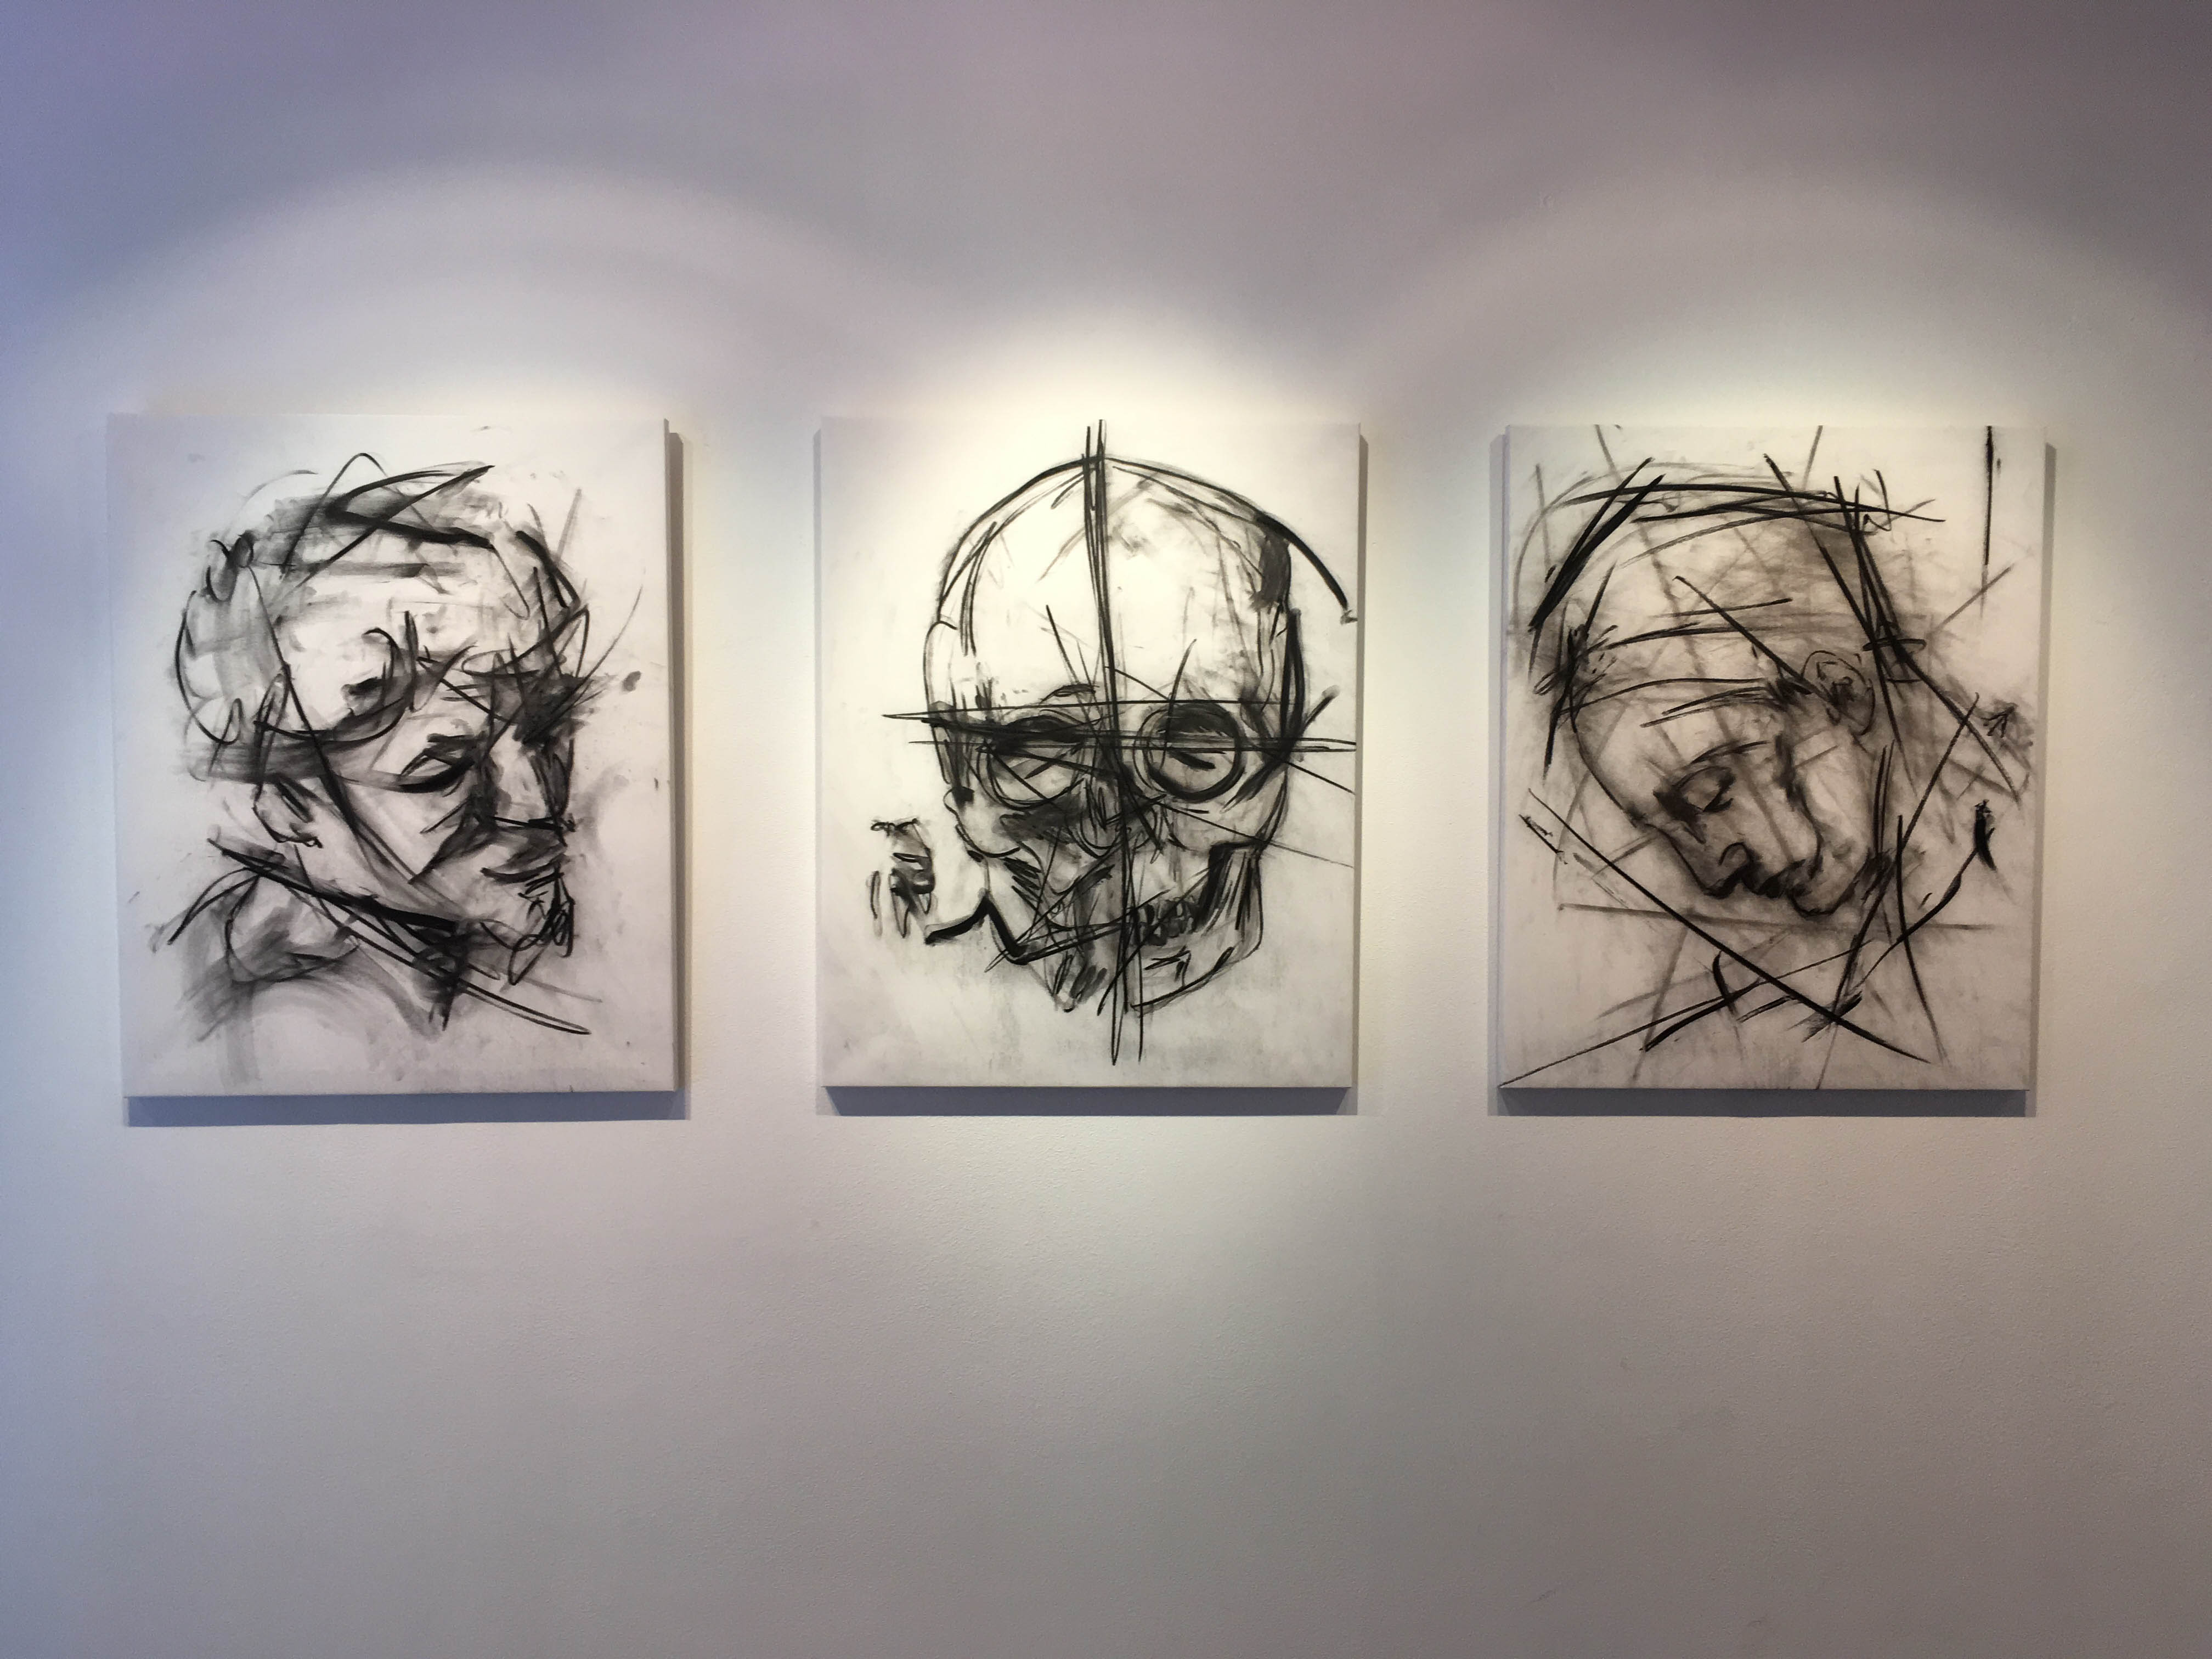 4032x3024 Drawing Renaissance, Personal Exhibition